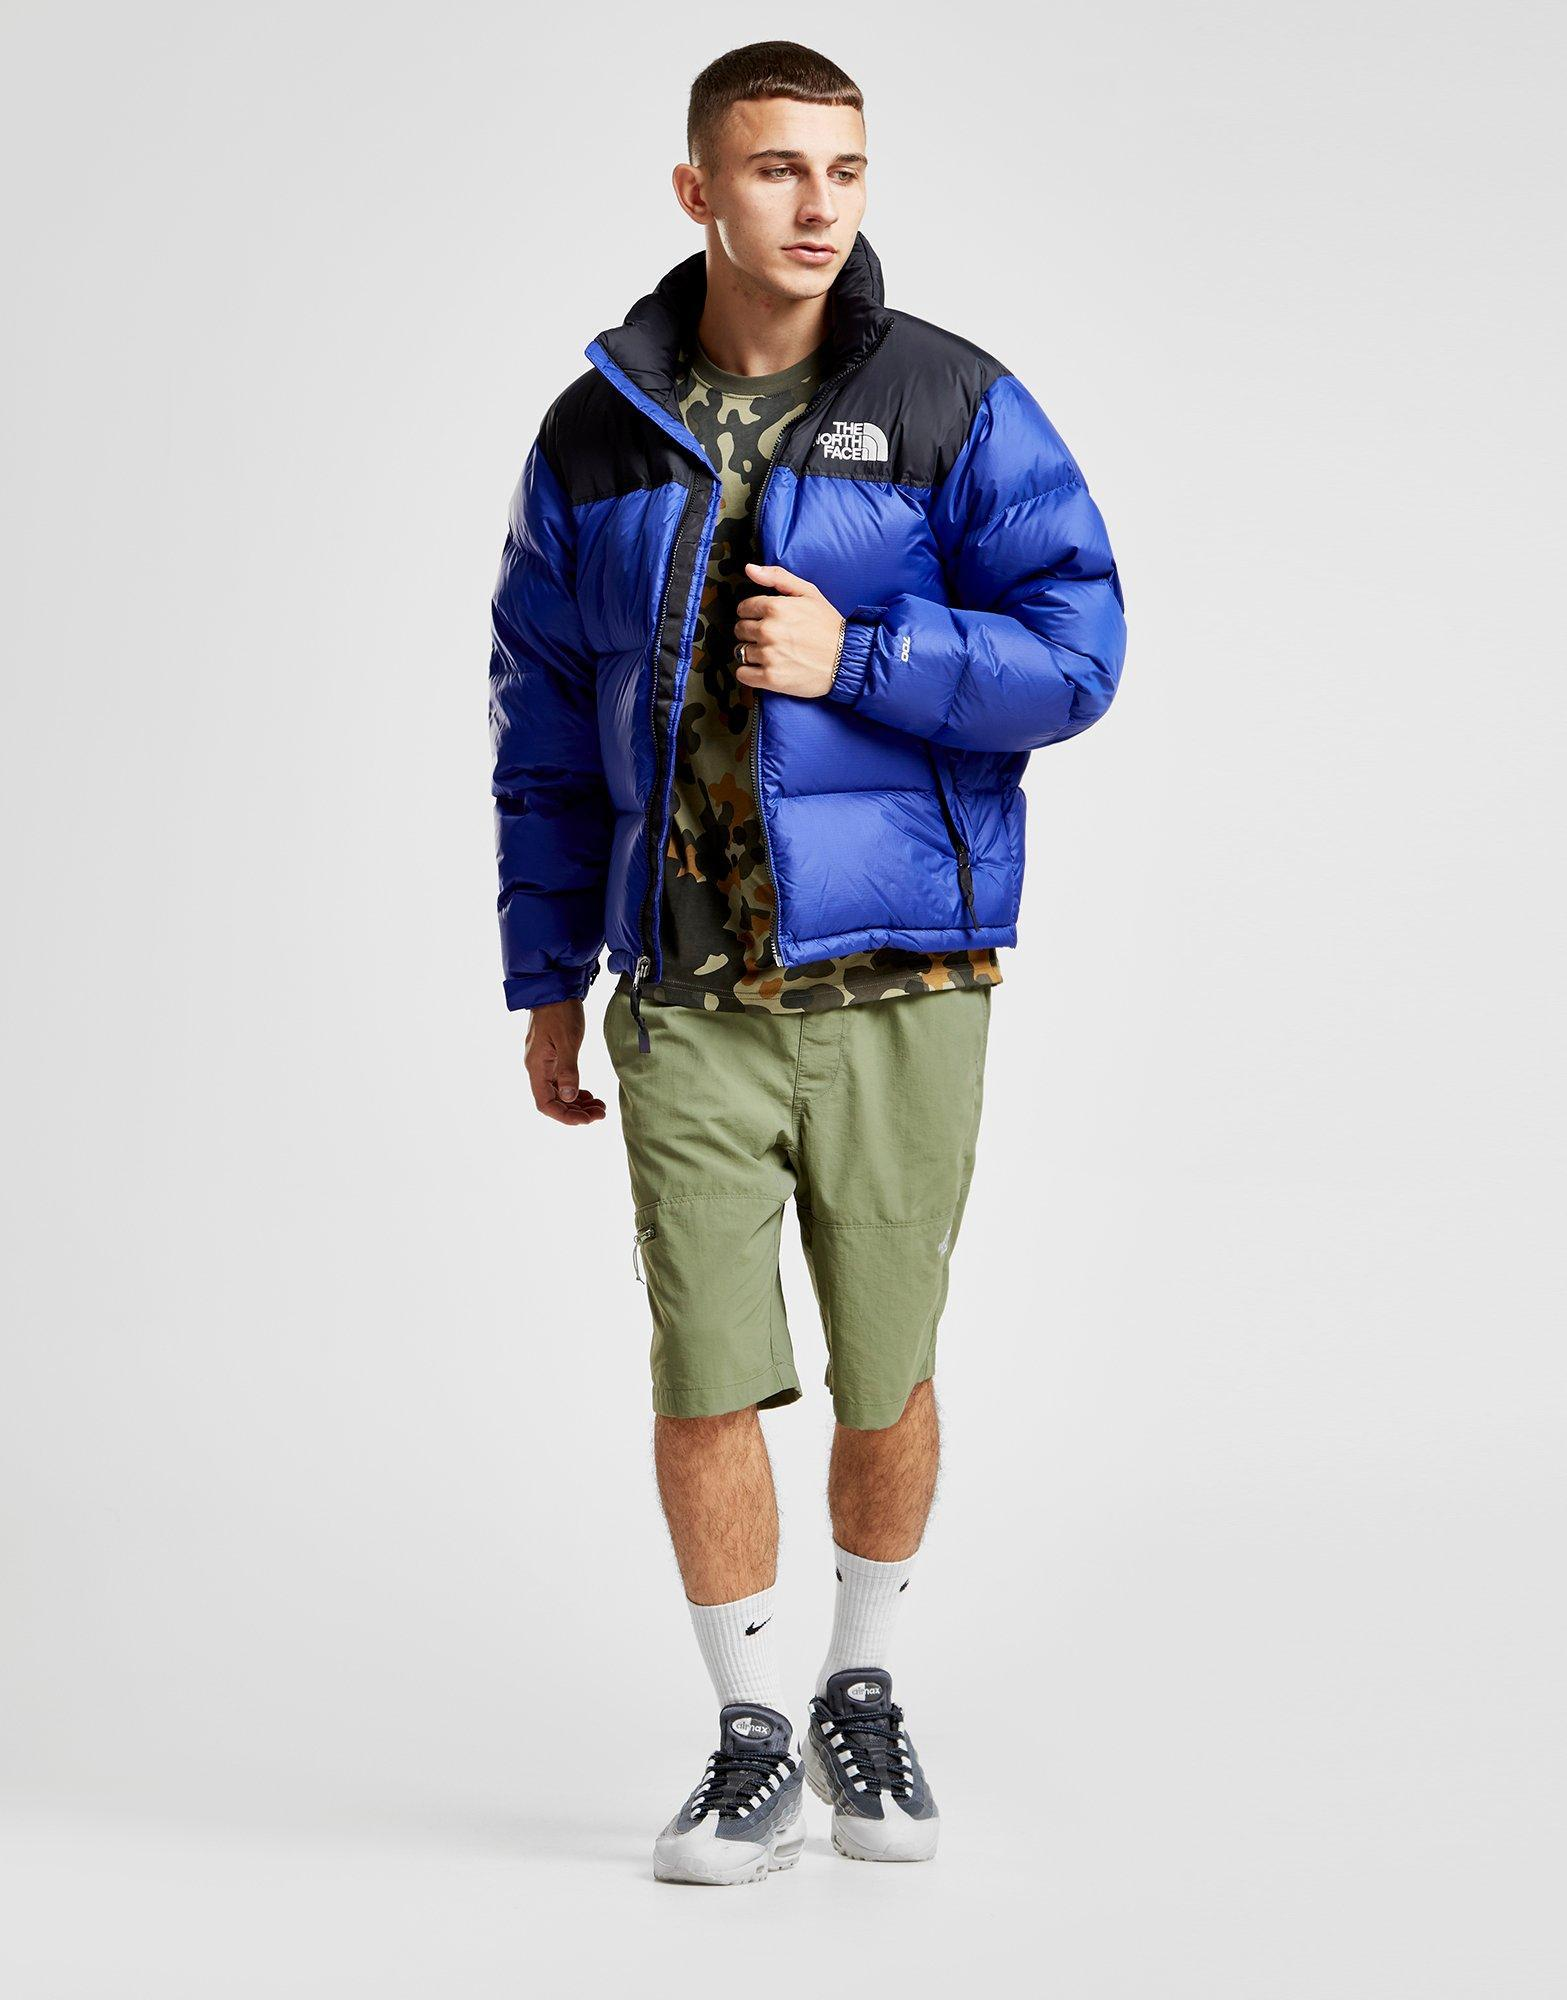 94a79ff481 Mens Black Nuptse Bib Trousers best service 156be c8c4f  Lyst - The North  Face Nuptse 1996 Jacket in Blue for Men new arrivals a9569 294f1 ...